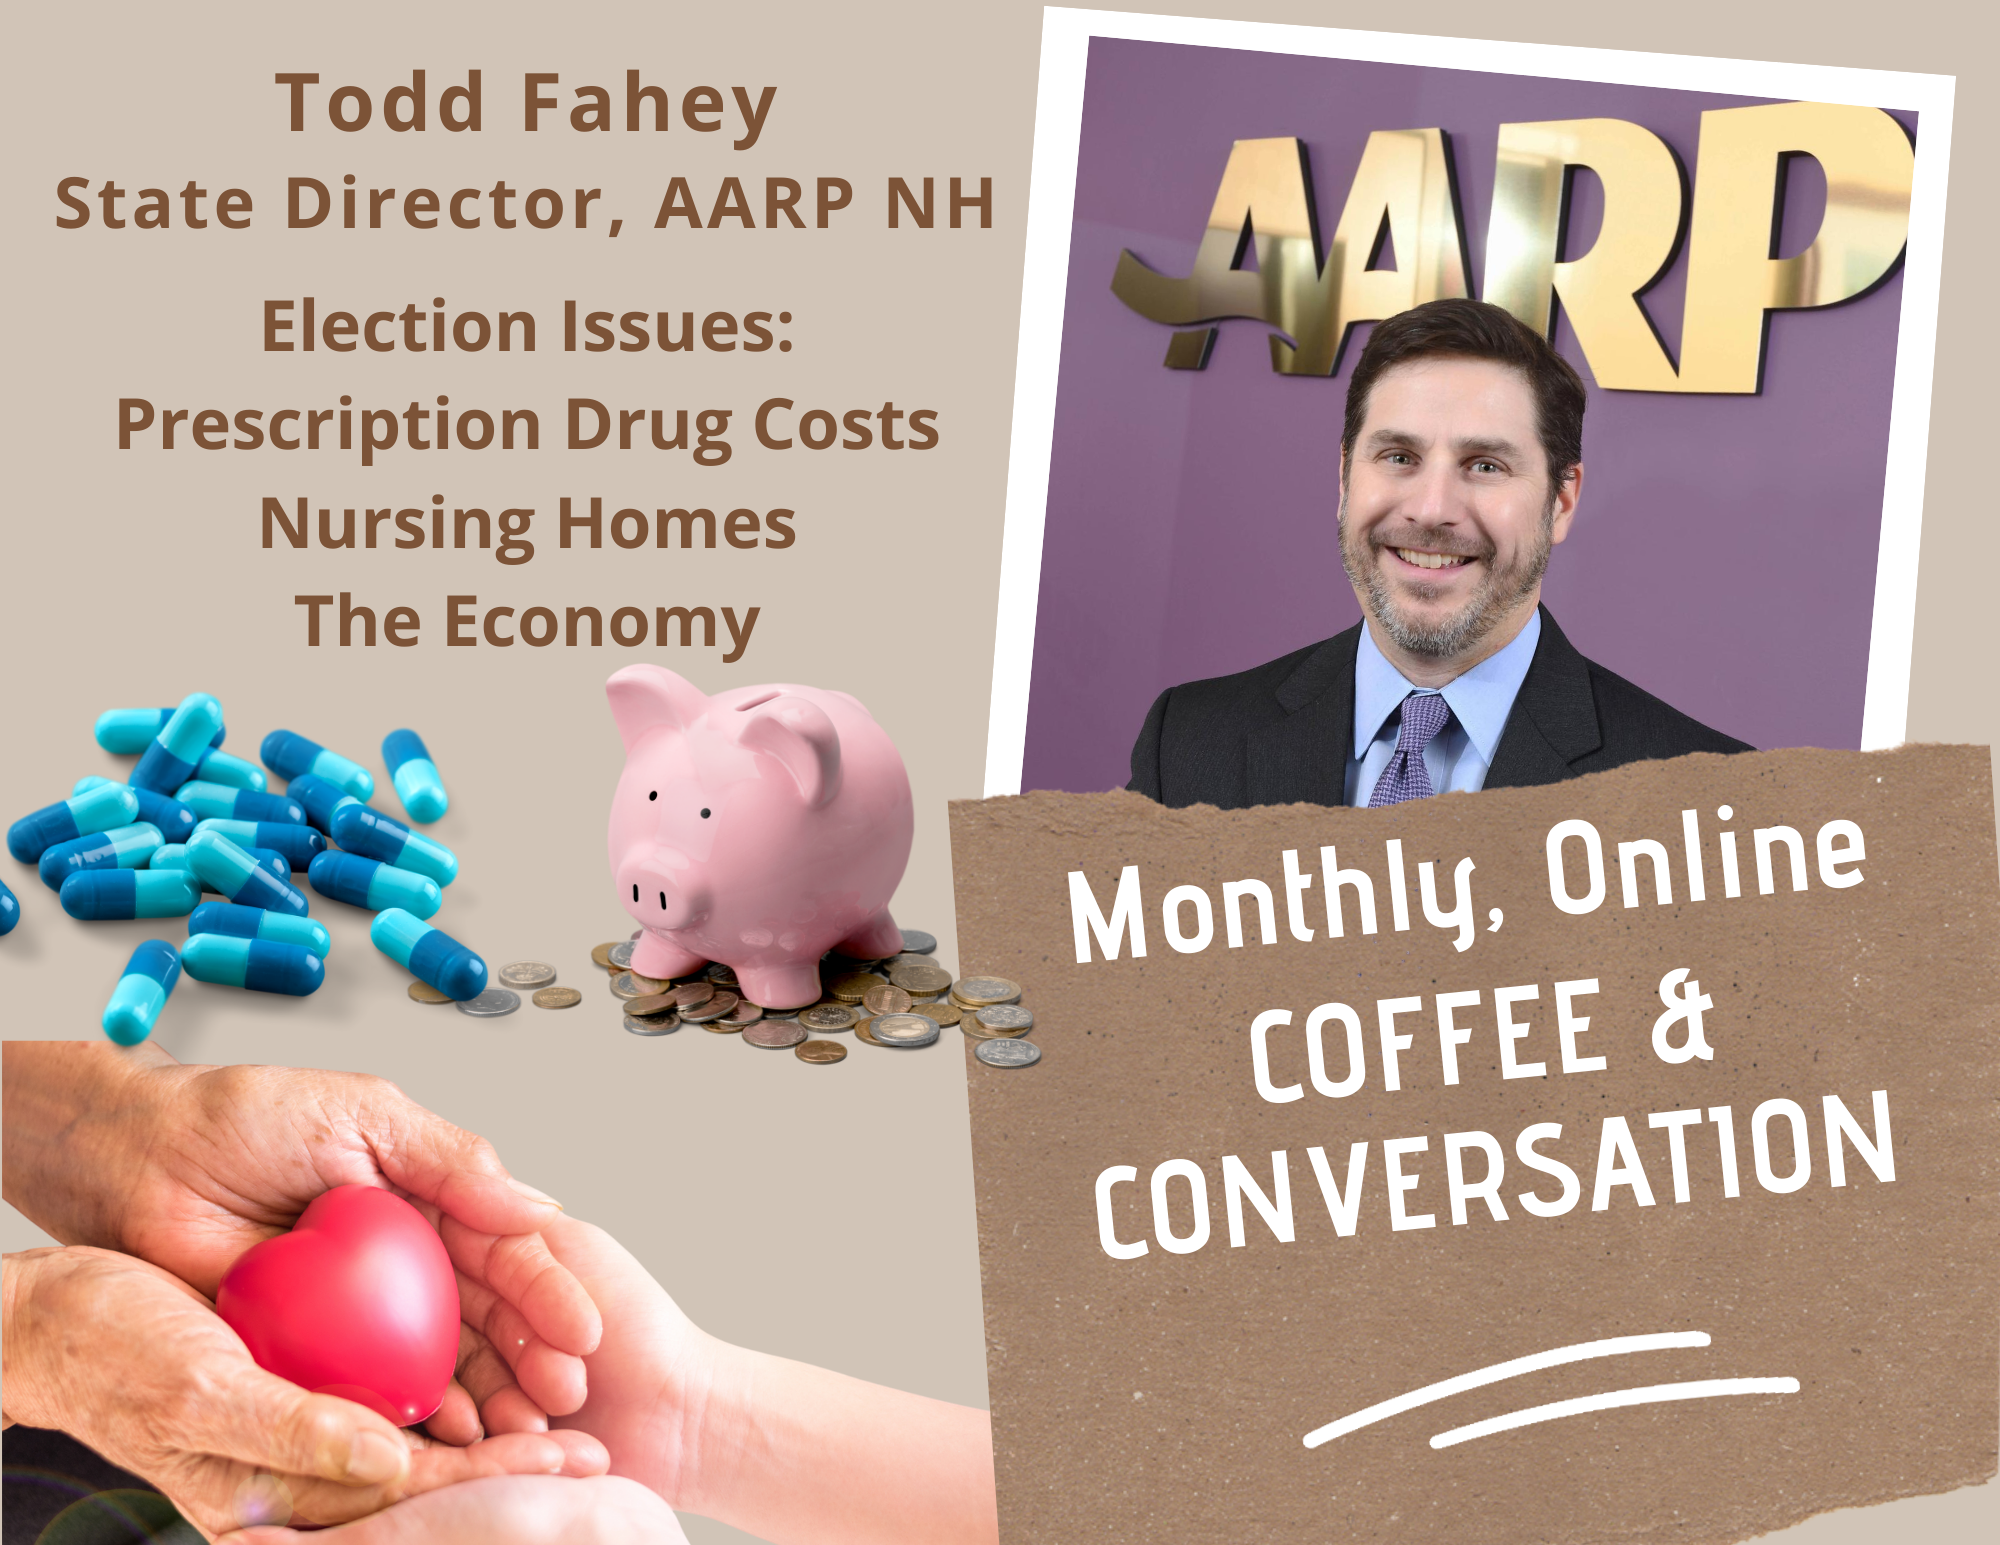 Coffee Conversation Todd Fahey 10_6 (1).png